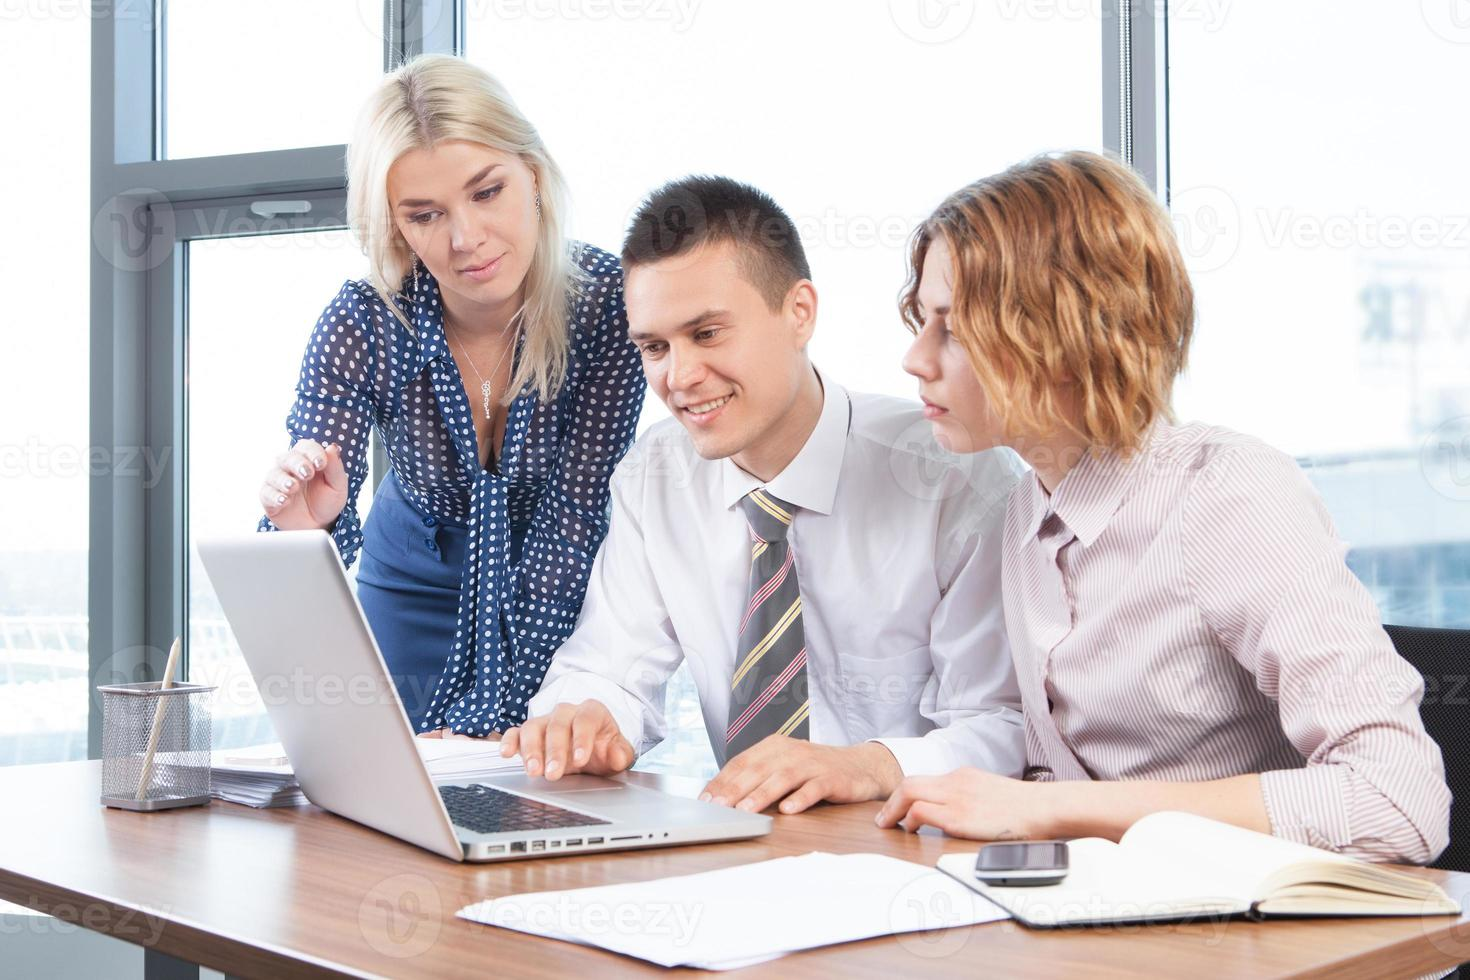 Businesspeople working together at meeting table in office photo